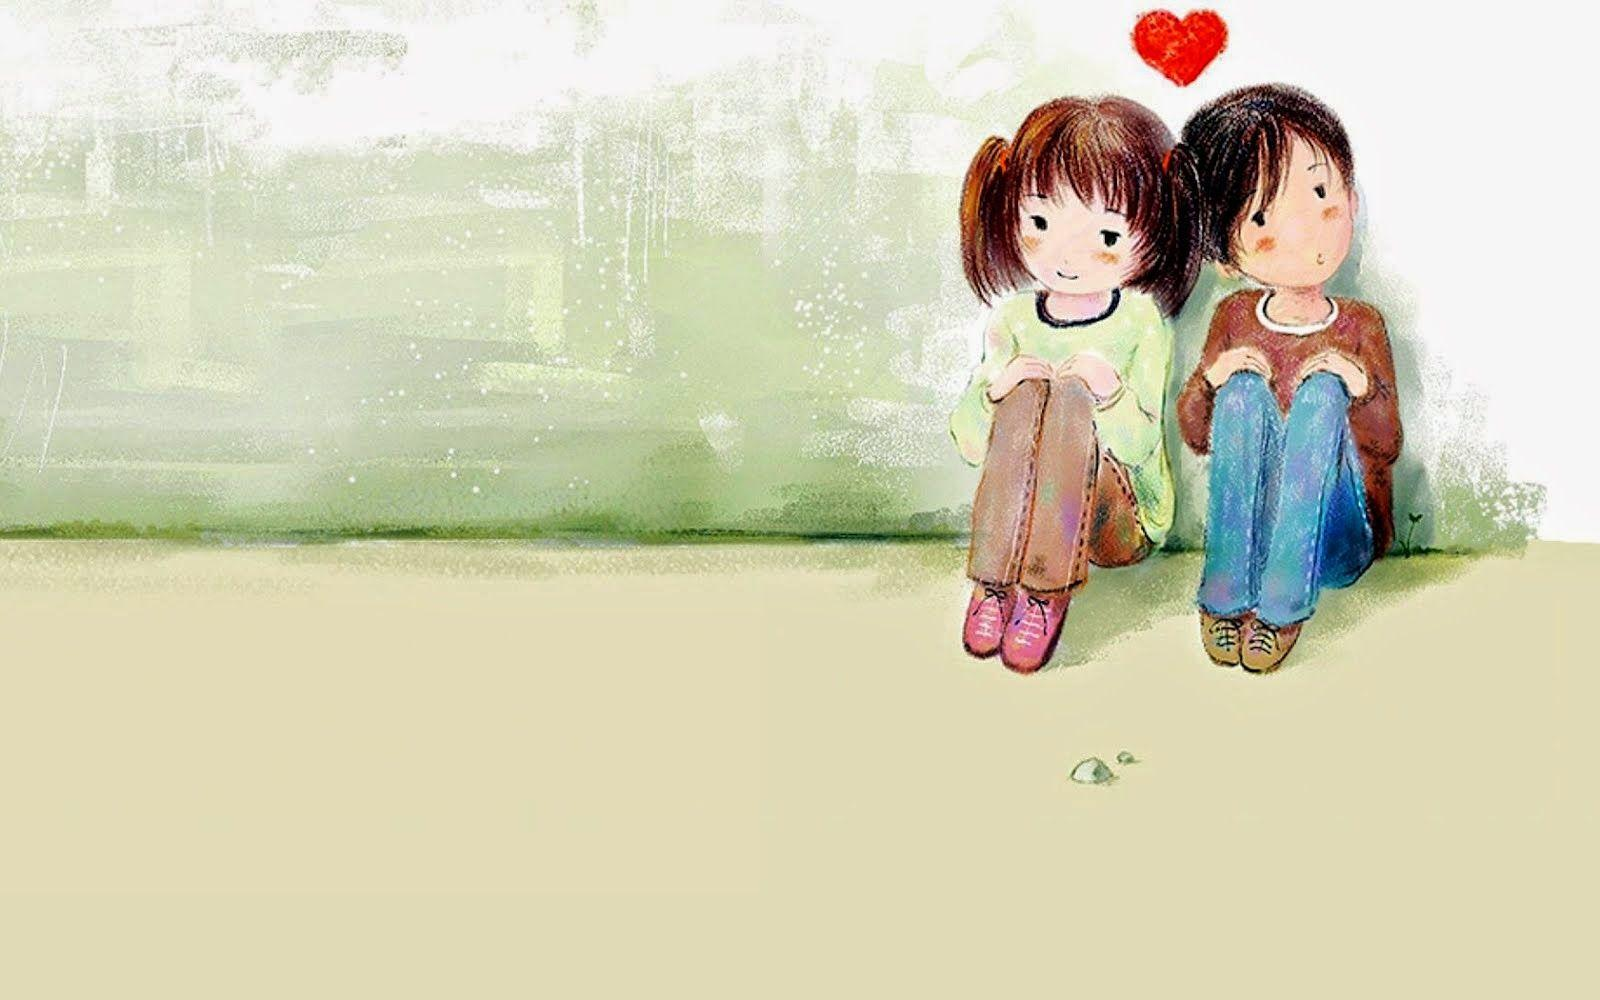 Couple images cartoon full hd wallpaper pics for computer love and